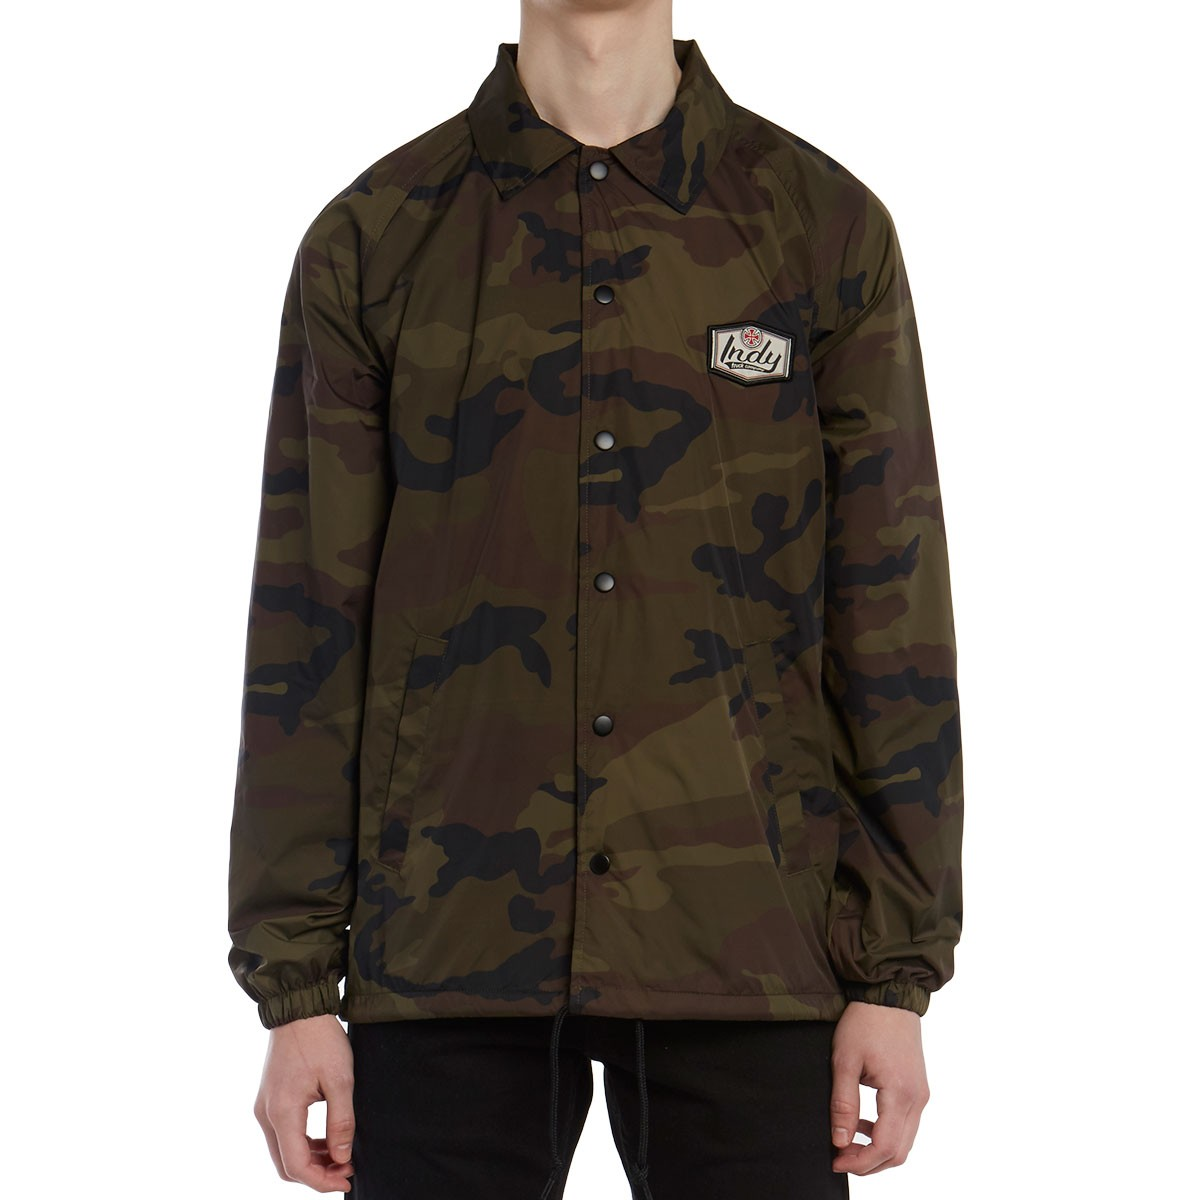 Indy Patch Coach Windbreaker Jacket - Camo